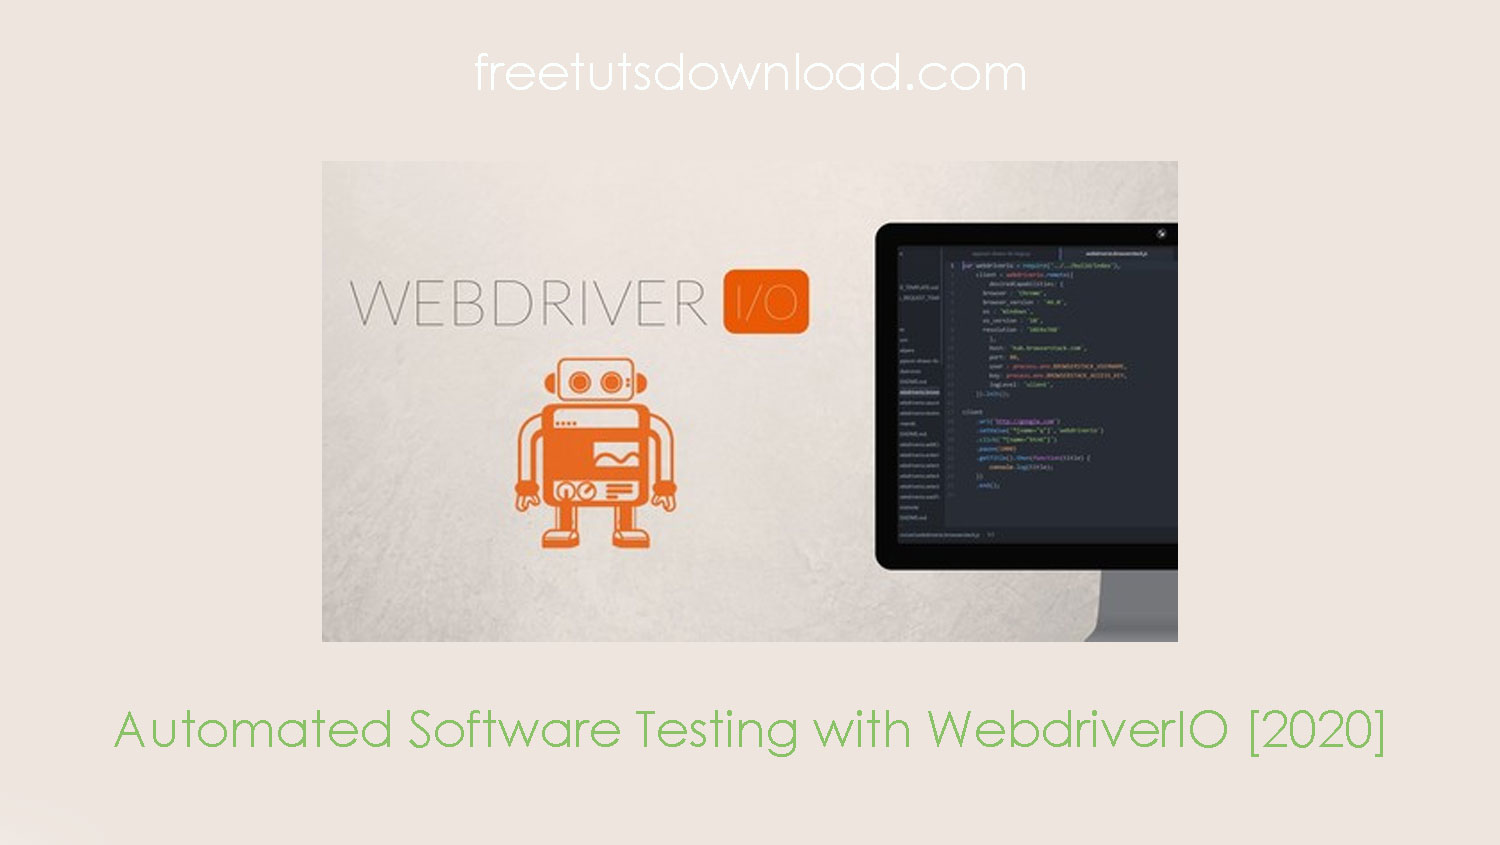 Automated Software Testing with WebdriverIO [2020] free download